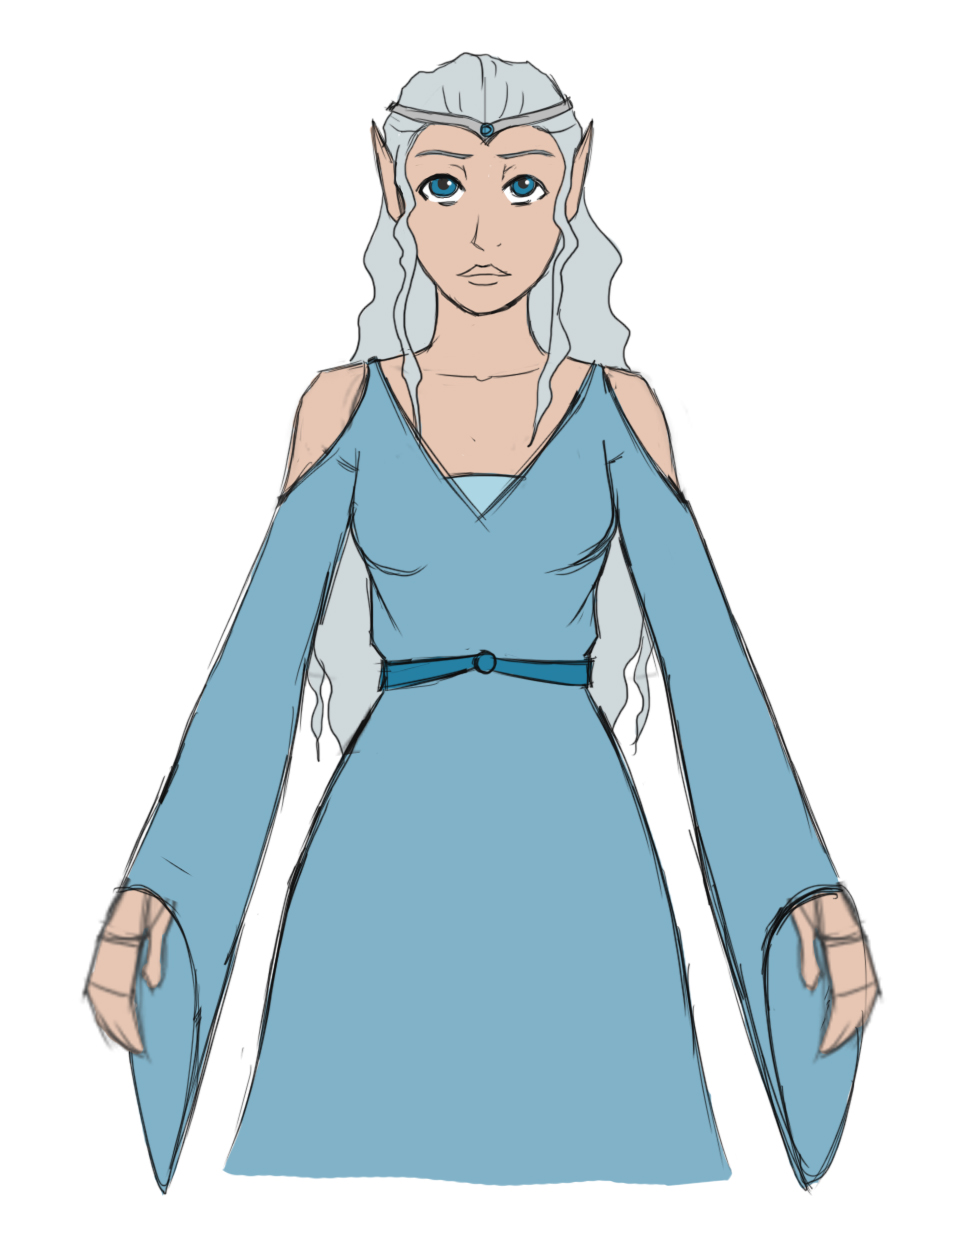 Slim girl wearing a cool, long dress, complete with long sleeves, her shoulders exposed. Her hair is long and silver, a simple crown adorns her head, her eyes matching its color.